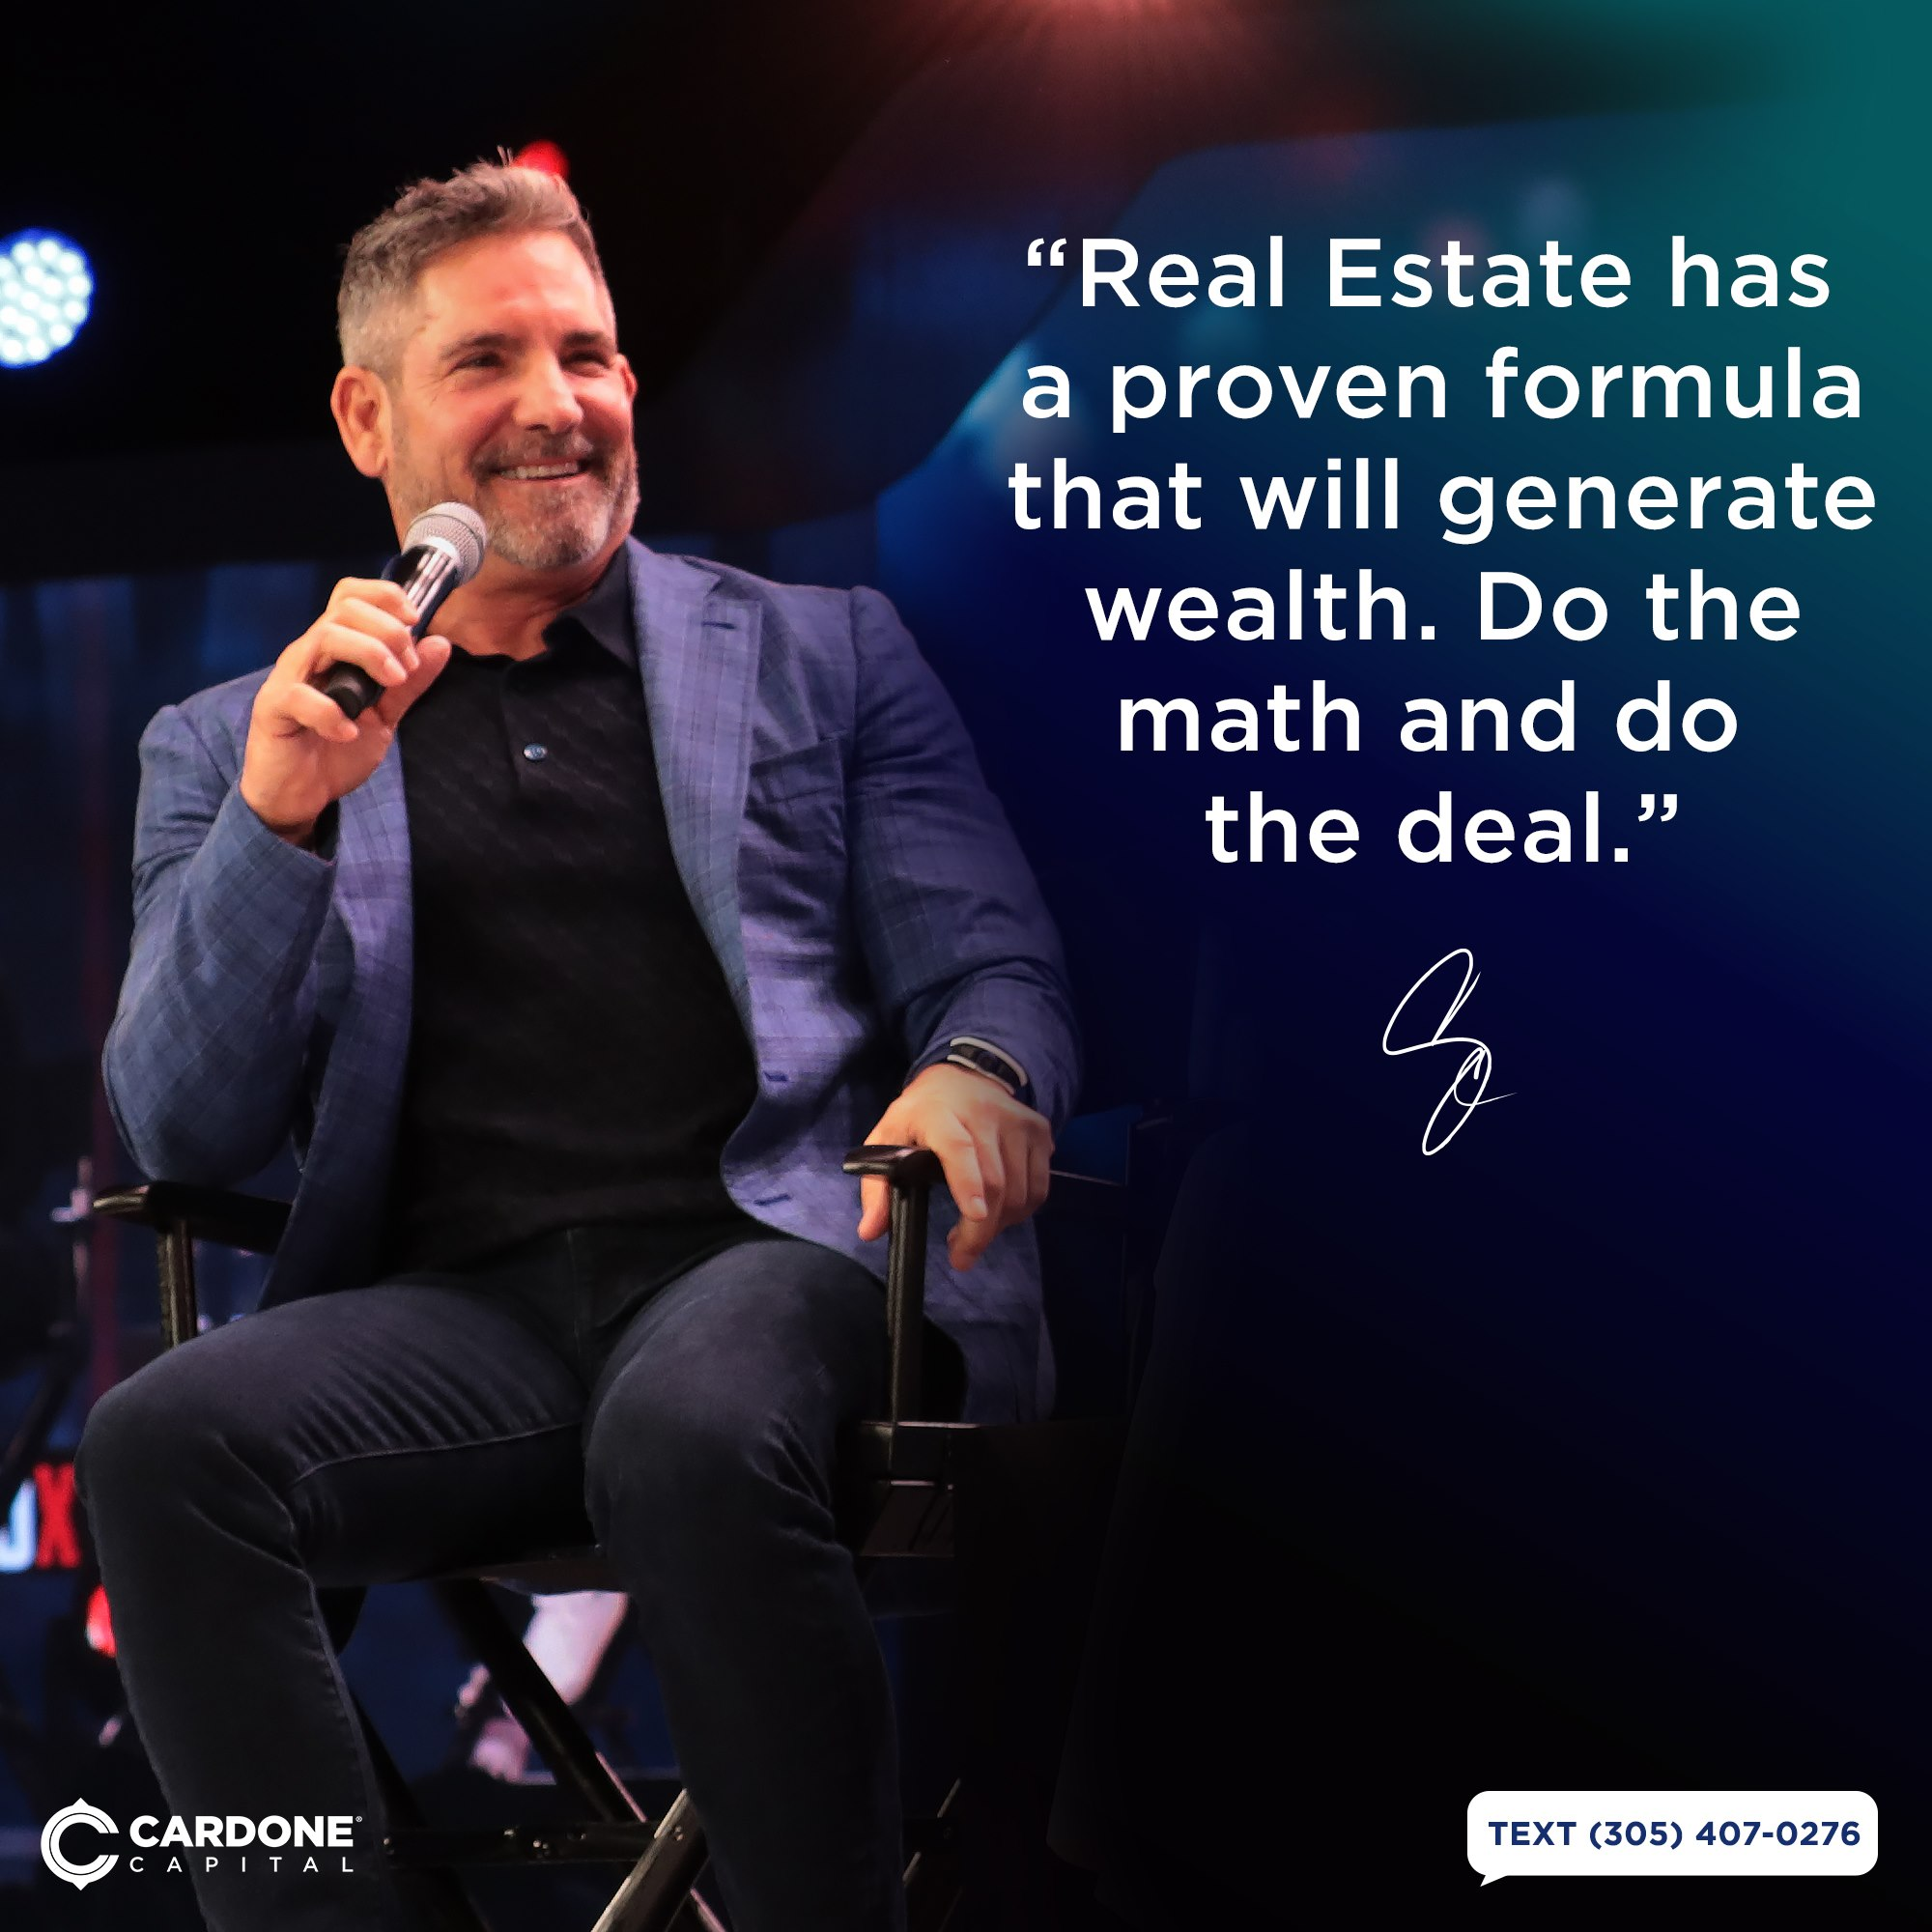 Best Grant Cardone Quotes on Real Estate